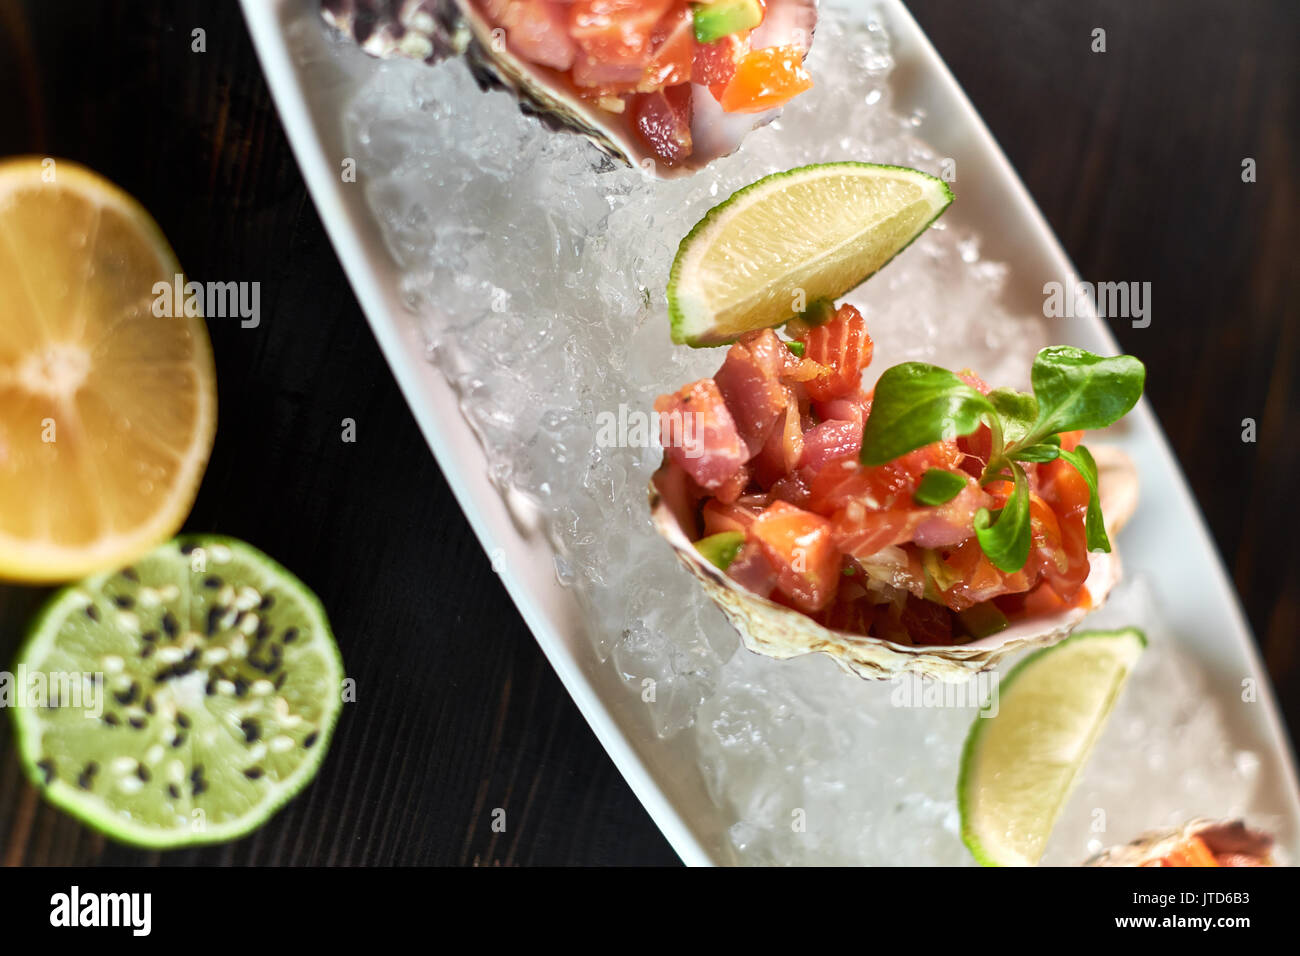 Delicious red fish in the shells of shellfish. With lemon and lime jpg - Stock Image